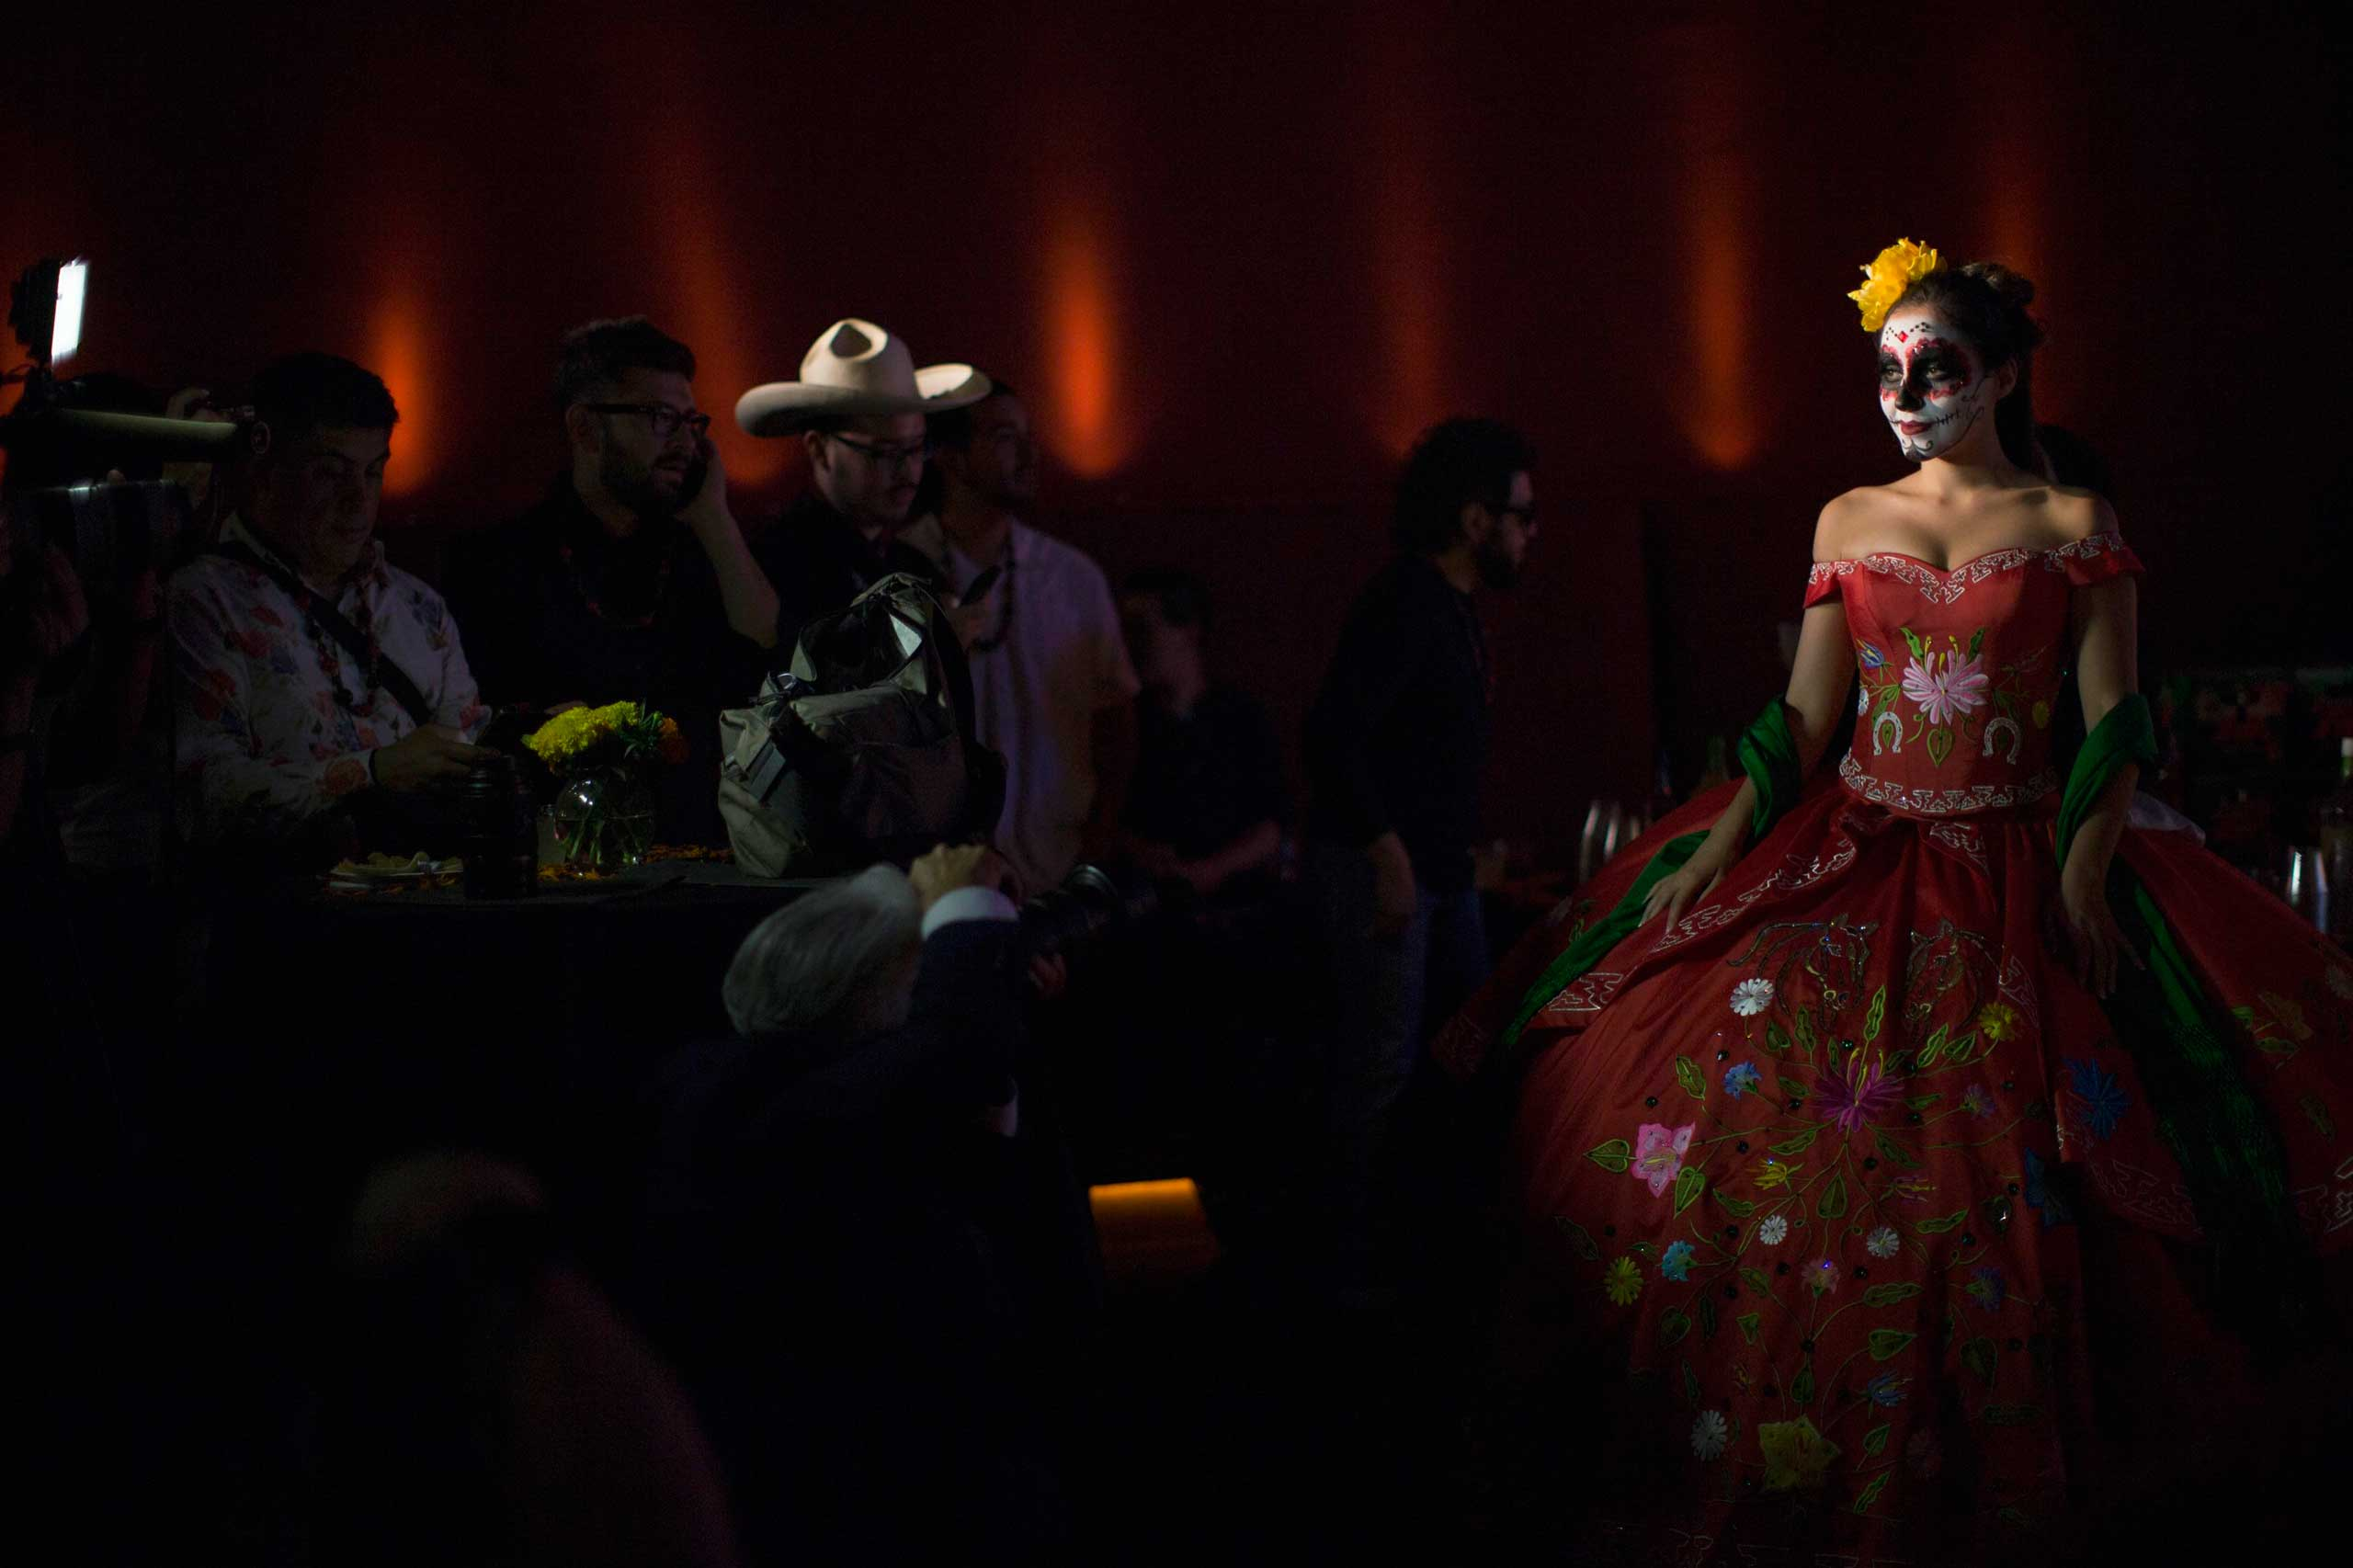 Oct. 24, 2014. A model is pictured during a Quinceañera Magazine Catrina fashion show at a press reception ahead of the 15th annual Day of the Dead festival at Hollywood Forever Cemetery in Los Angeles.